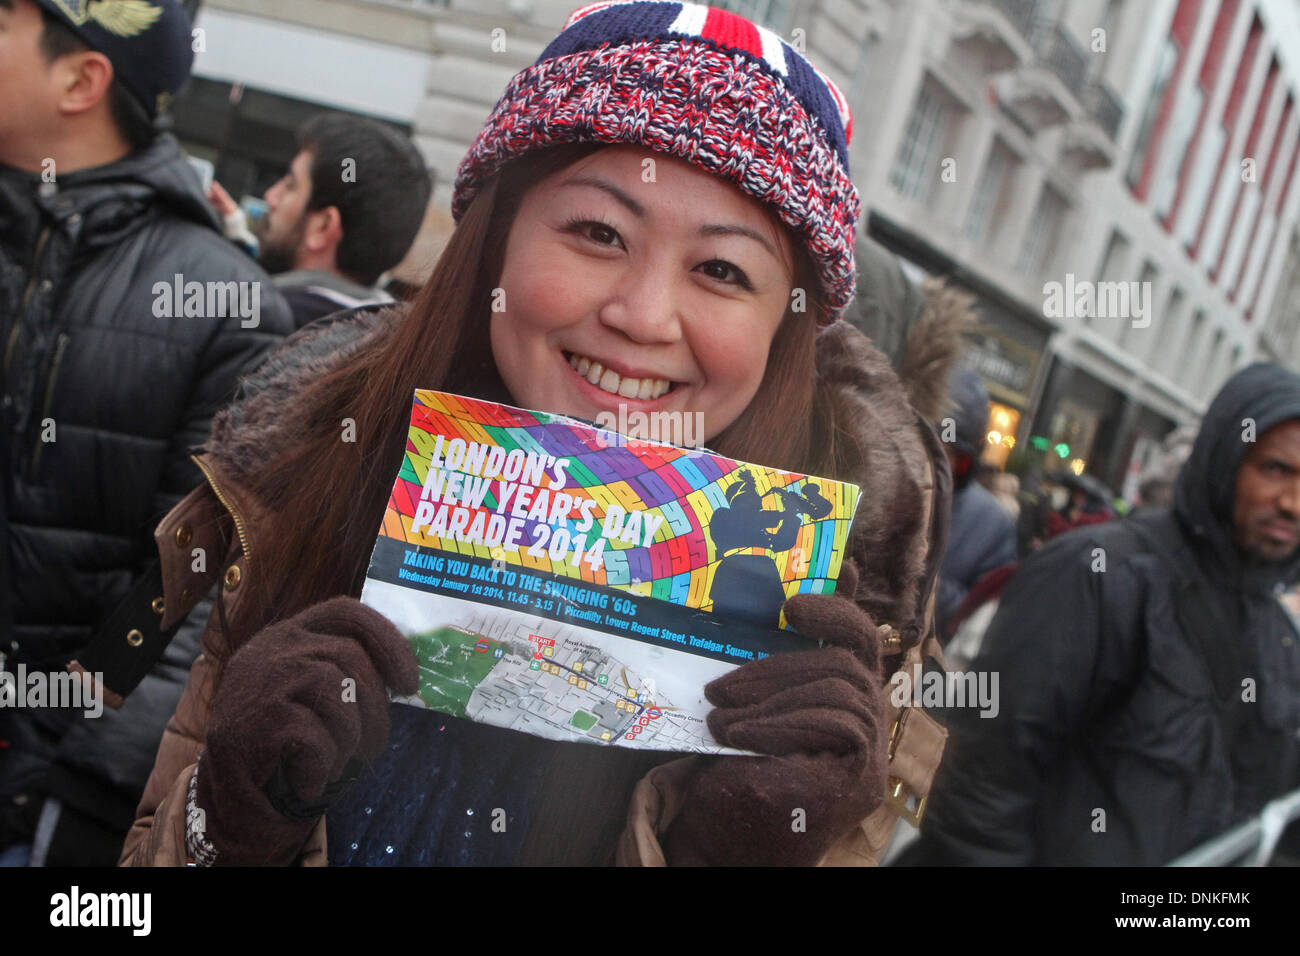 London,UK,1st January 2014,Waiting, despite the rain, for the London's New Year's Day Parade 2014 Credit: Keith Larby/Alamy Live News - Stock Image